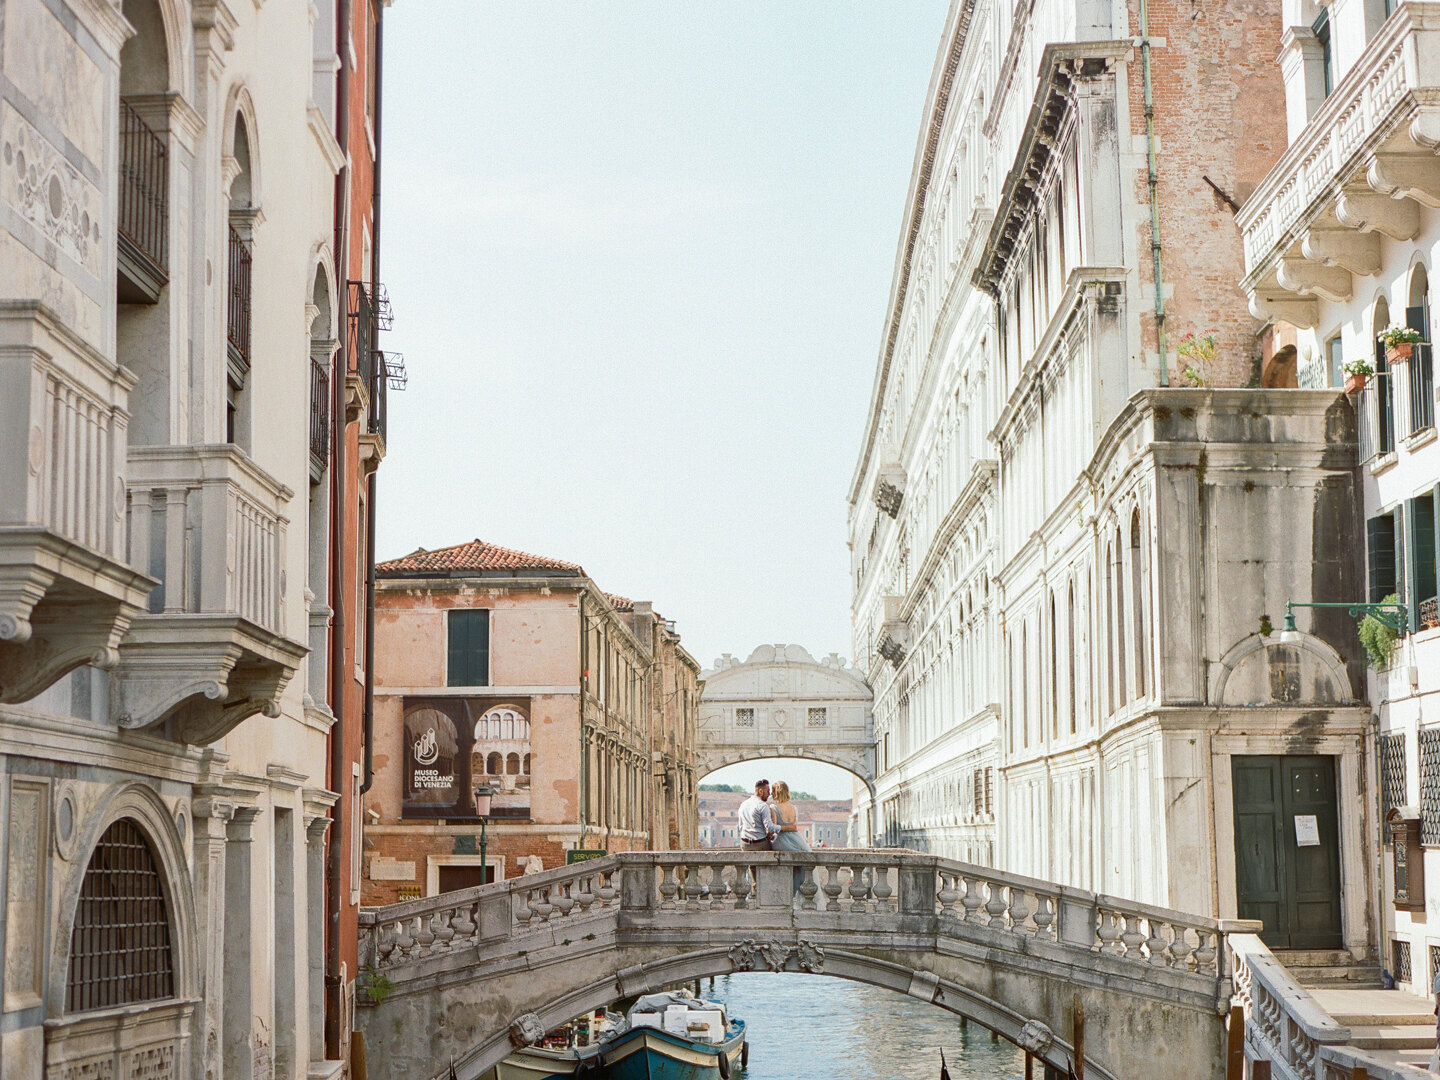 Wedding Photographer in Venice: A beautiful, young couple sits and gently hugs on one of the bridges of romantic and sunny Venice